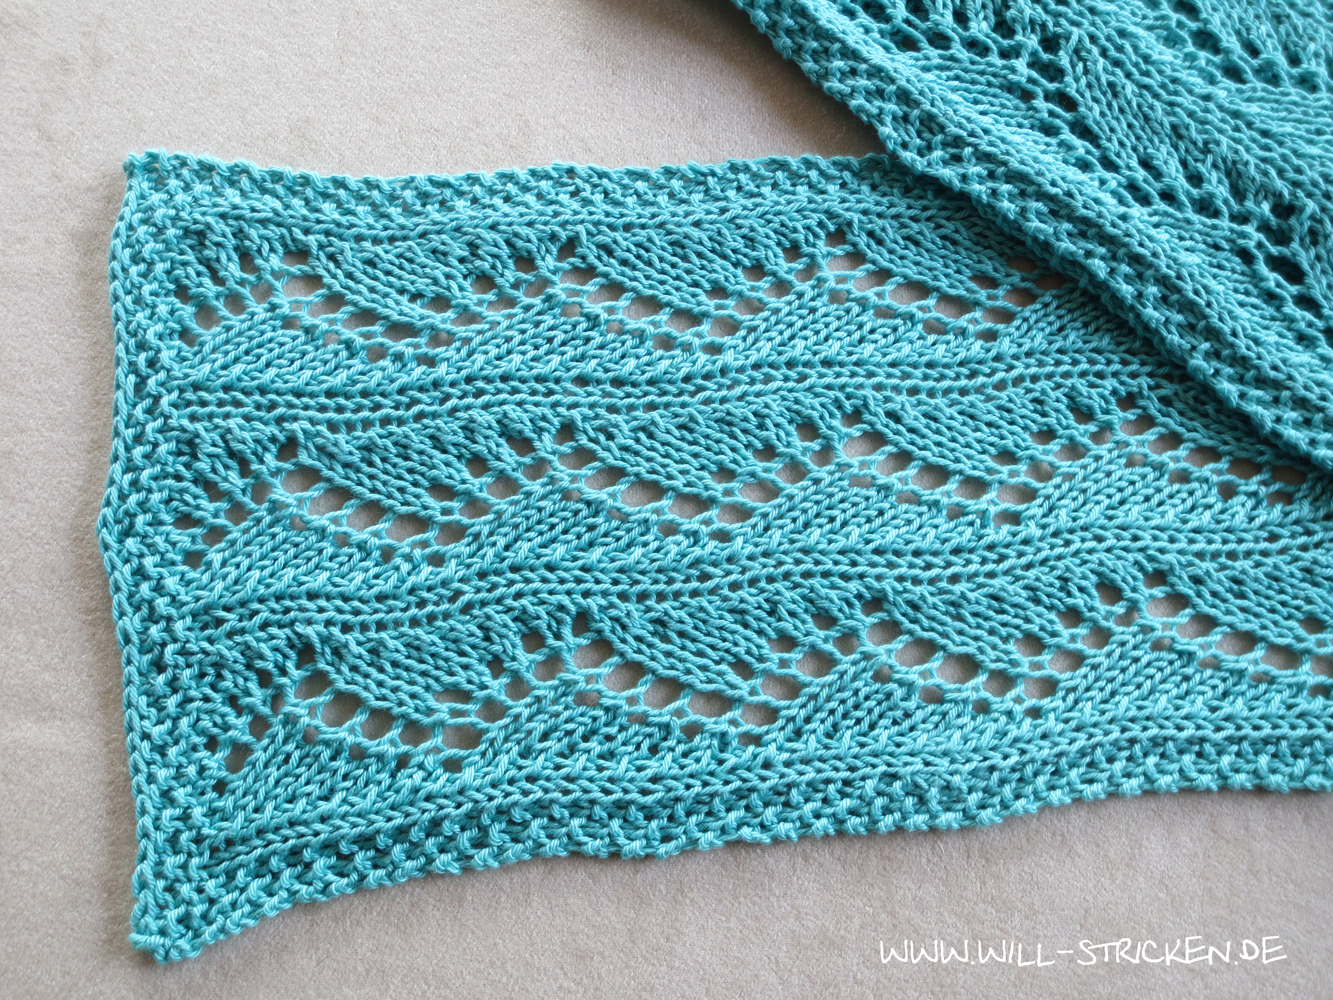 Amazing Spa Tuch Strickmuster Image Collection - Decke Stricken ...